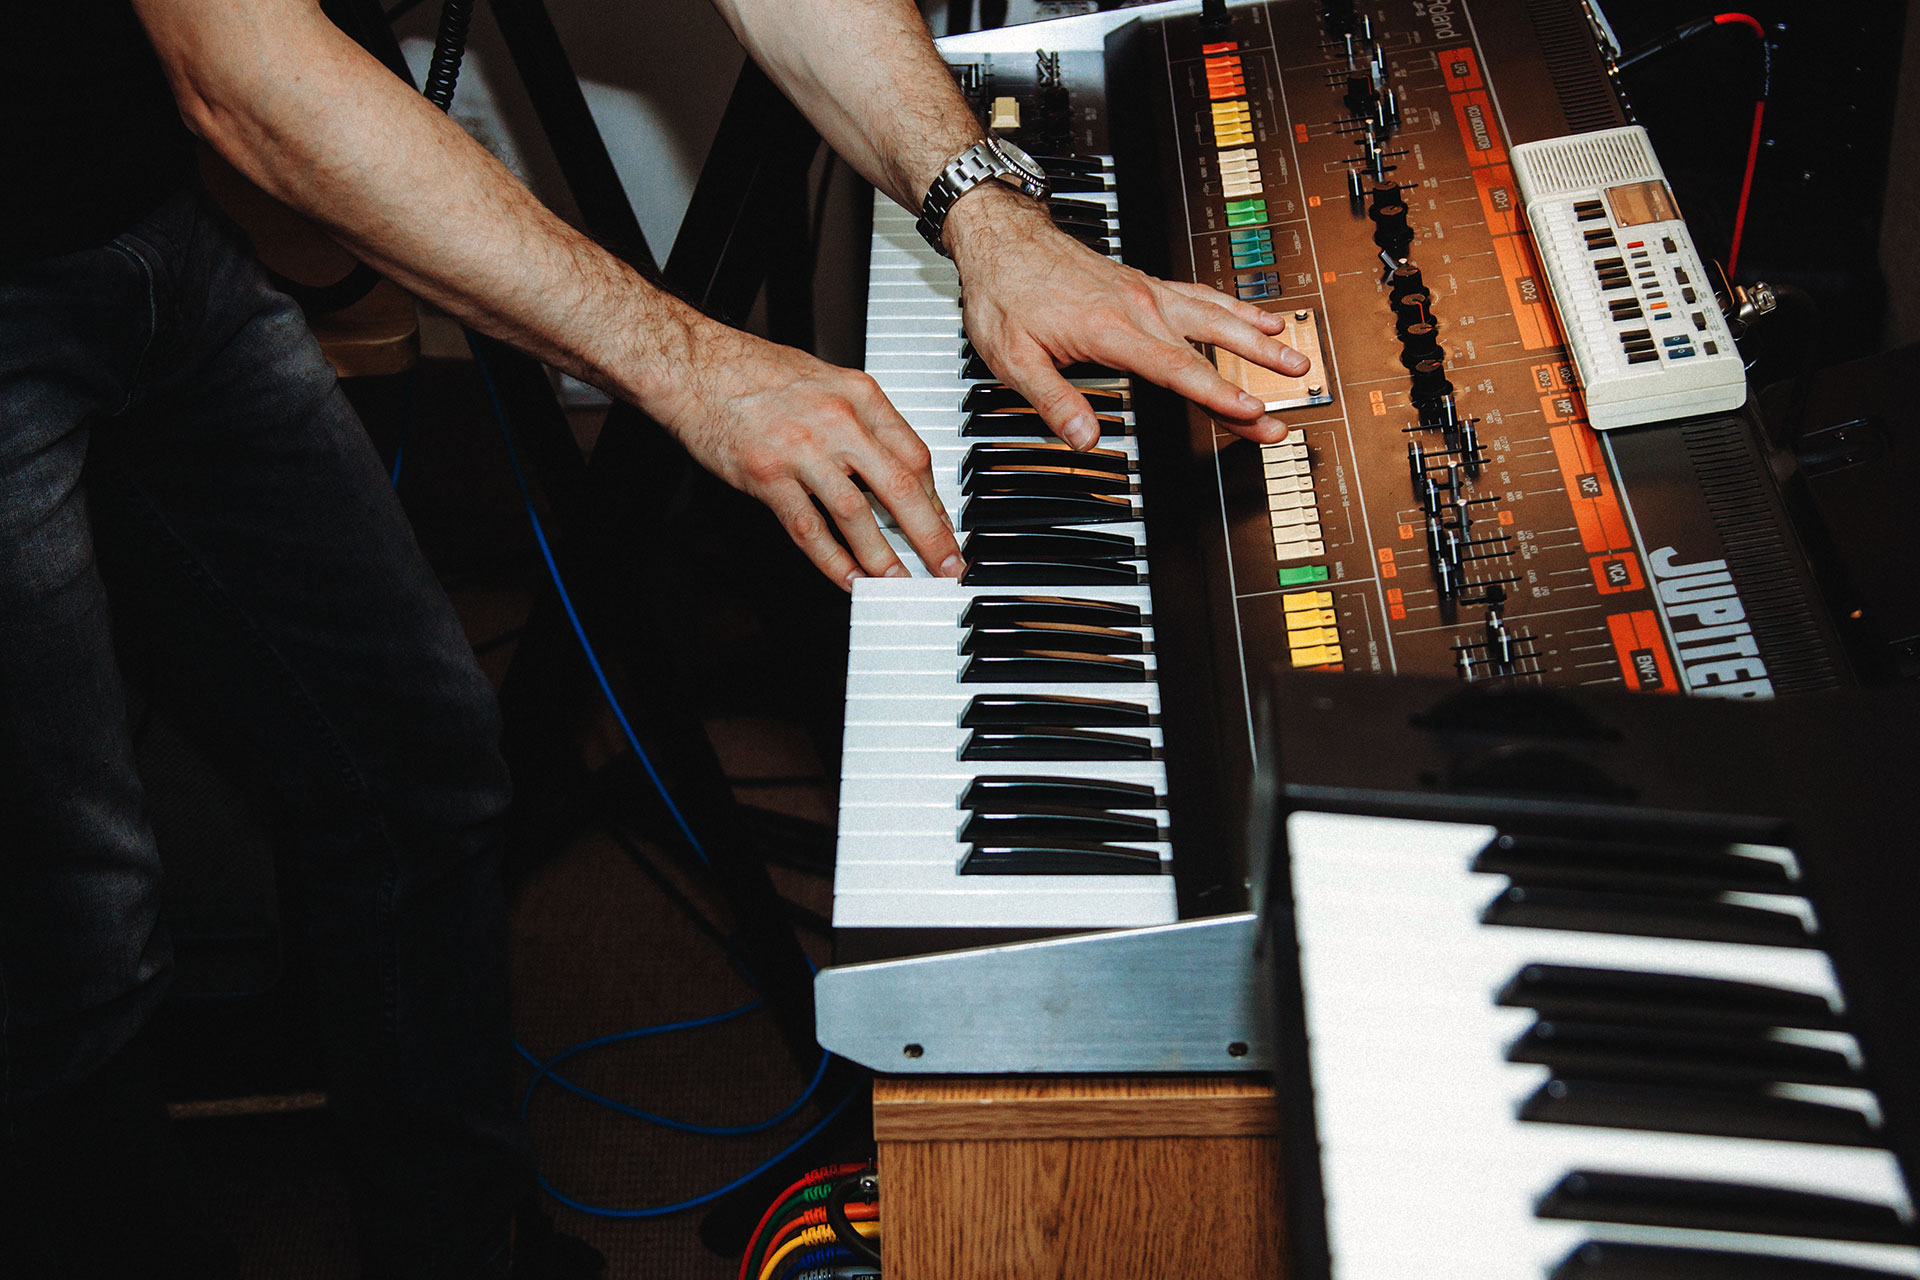 Stephen Becker playing the Jupiter 8 synthesizer